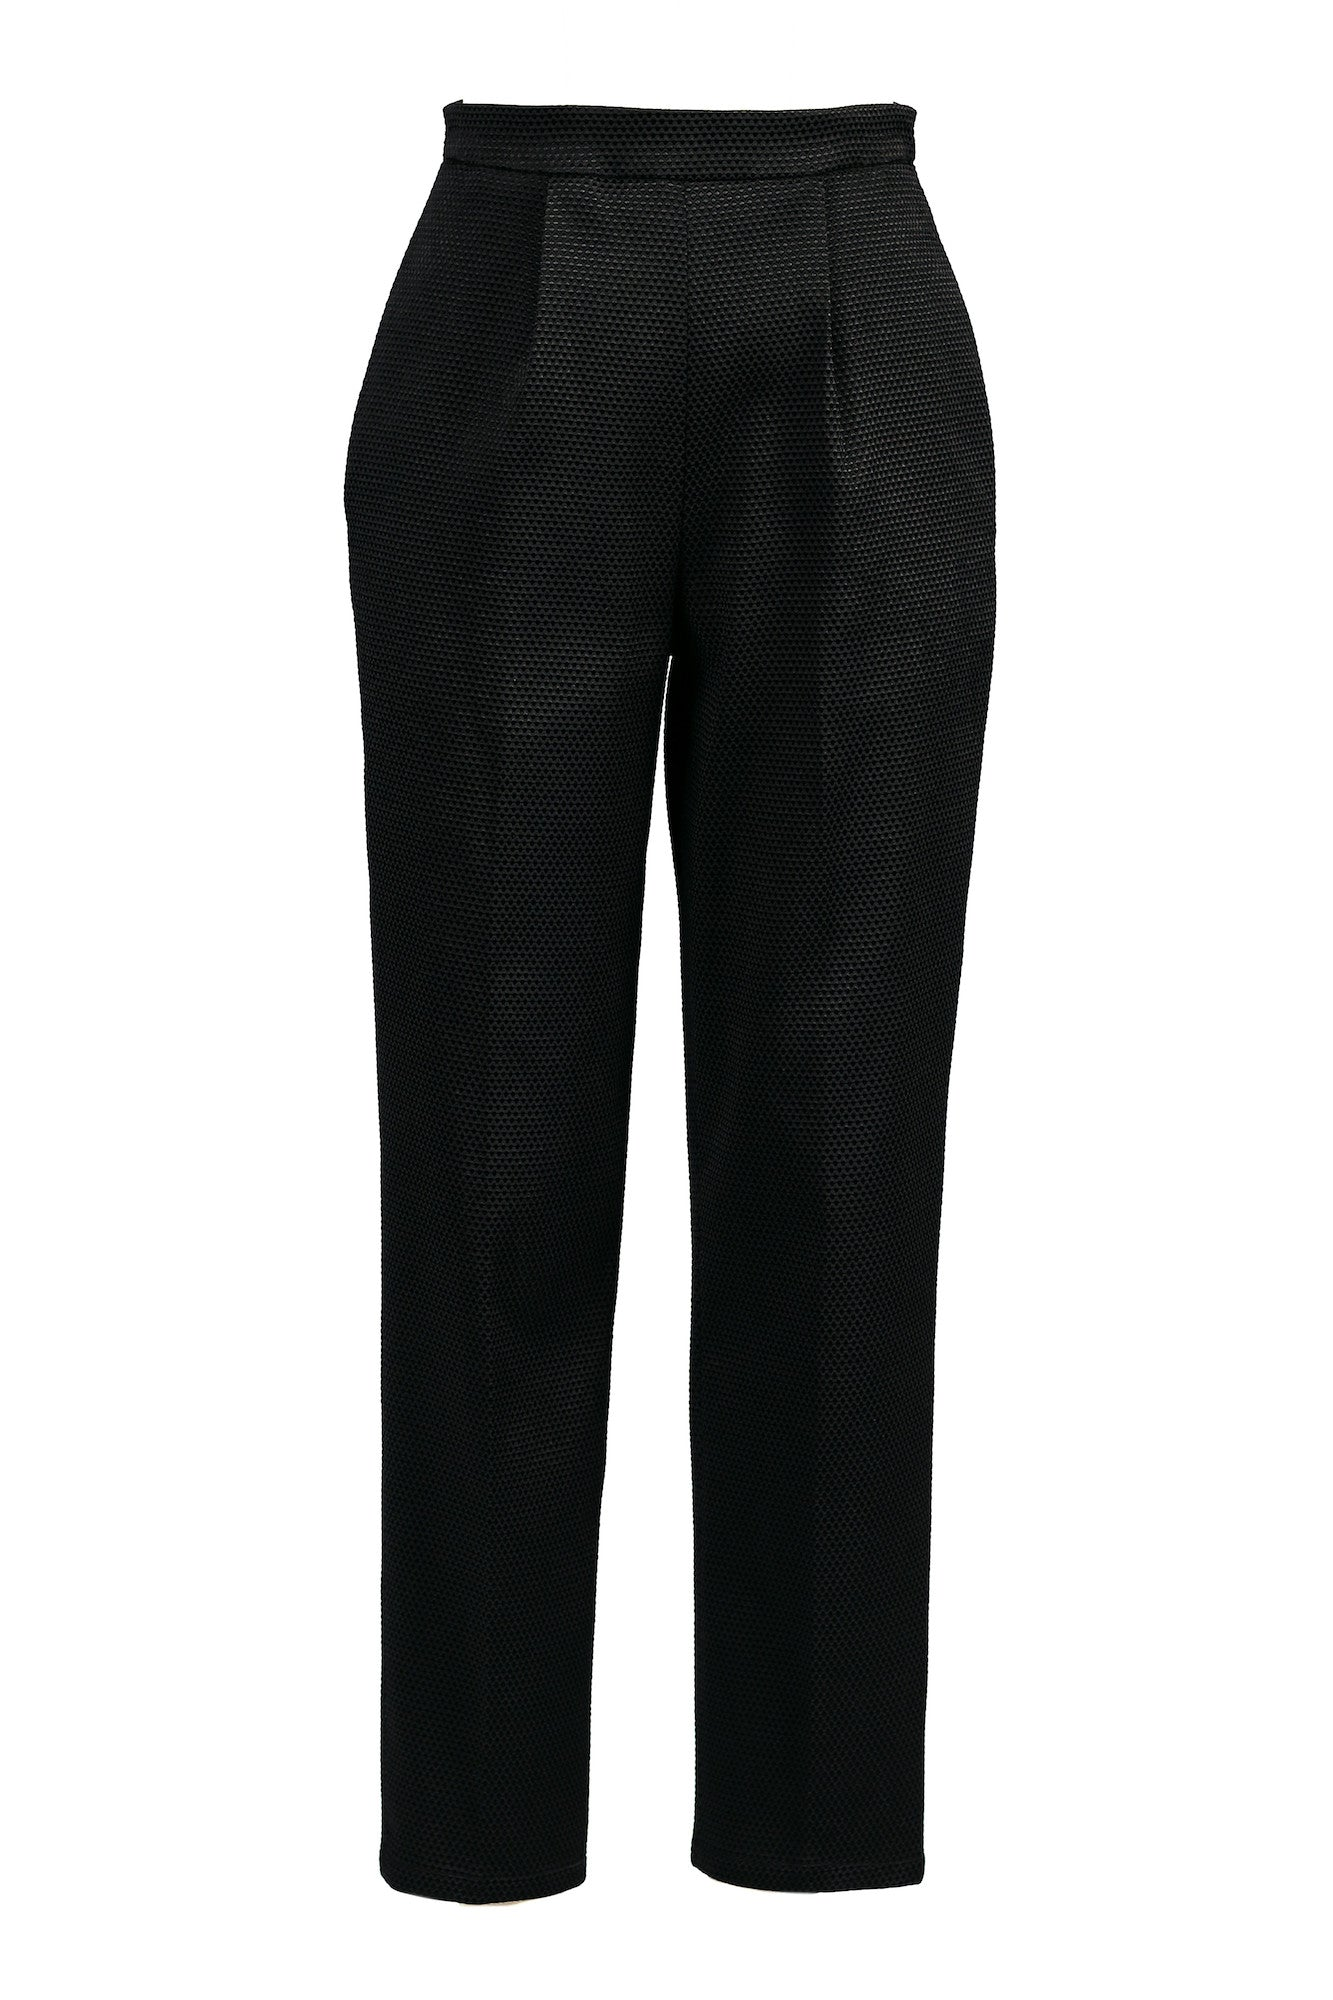 Hight-waisted, Pleated Cigarette Pants for All Seasons - Steve Guthrie - 3